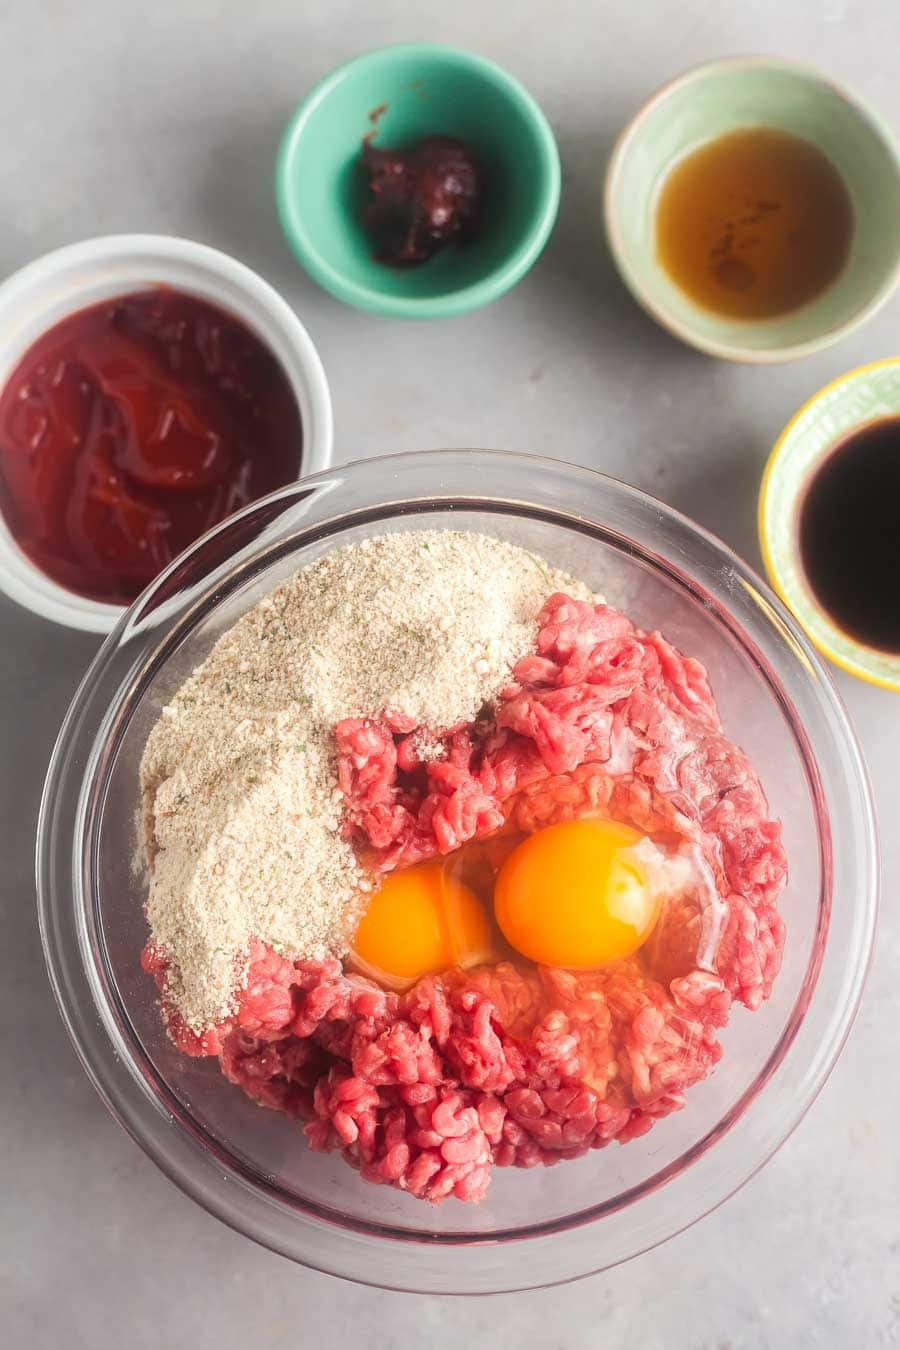 An overhead view of the ingredients to make slow cooker meatloaf. Ground beef, eggs, and breadcrumbs are together in a large bowl, The sauce ingredients are in individual bowls alongside